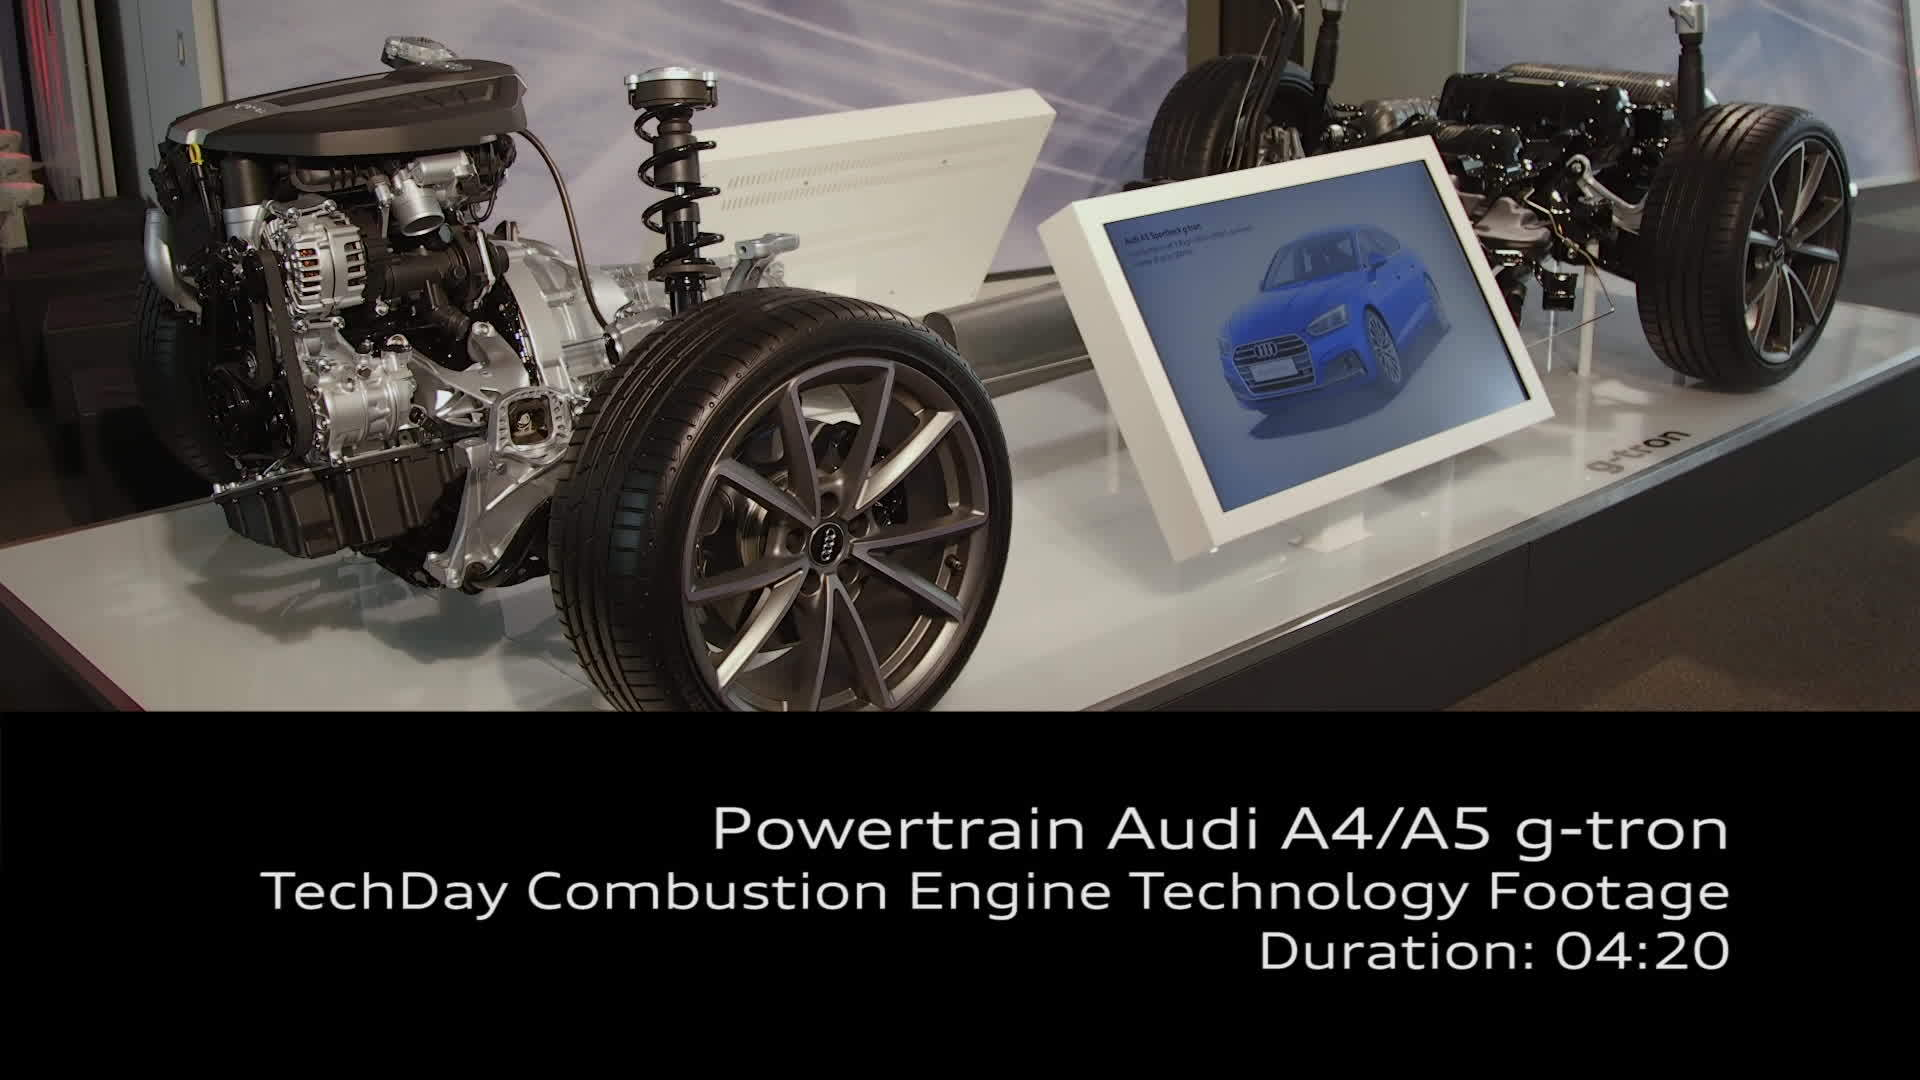 Footage powertrain Audi A4/A5 g-tron